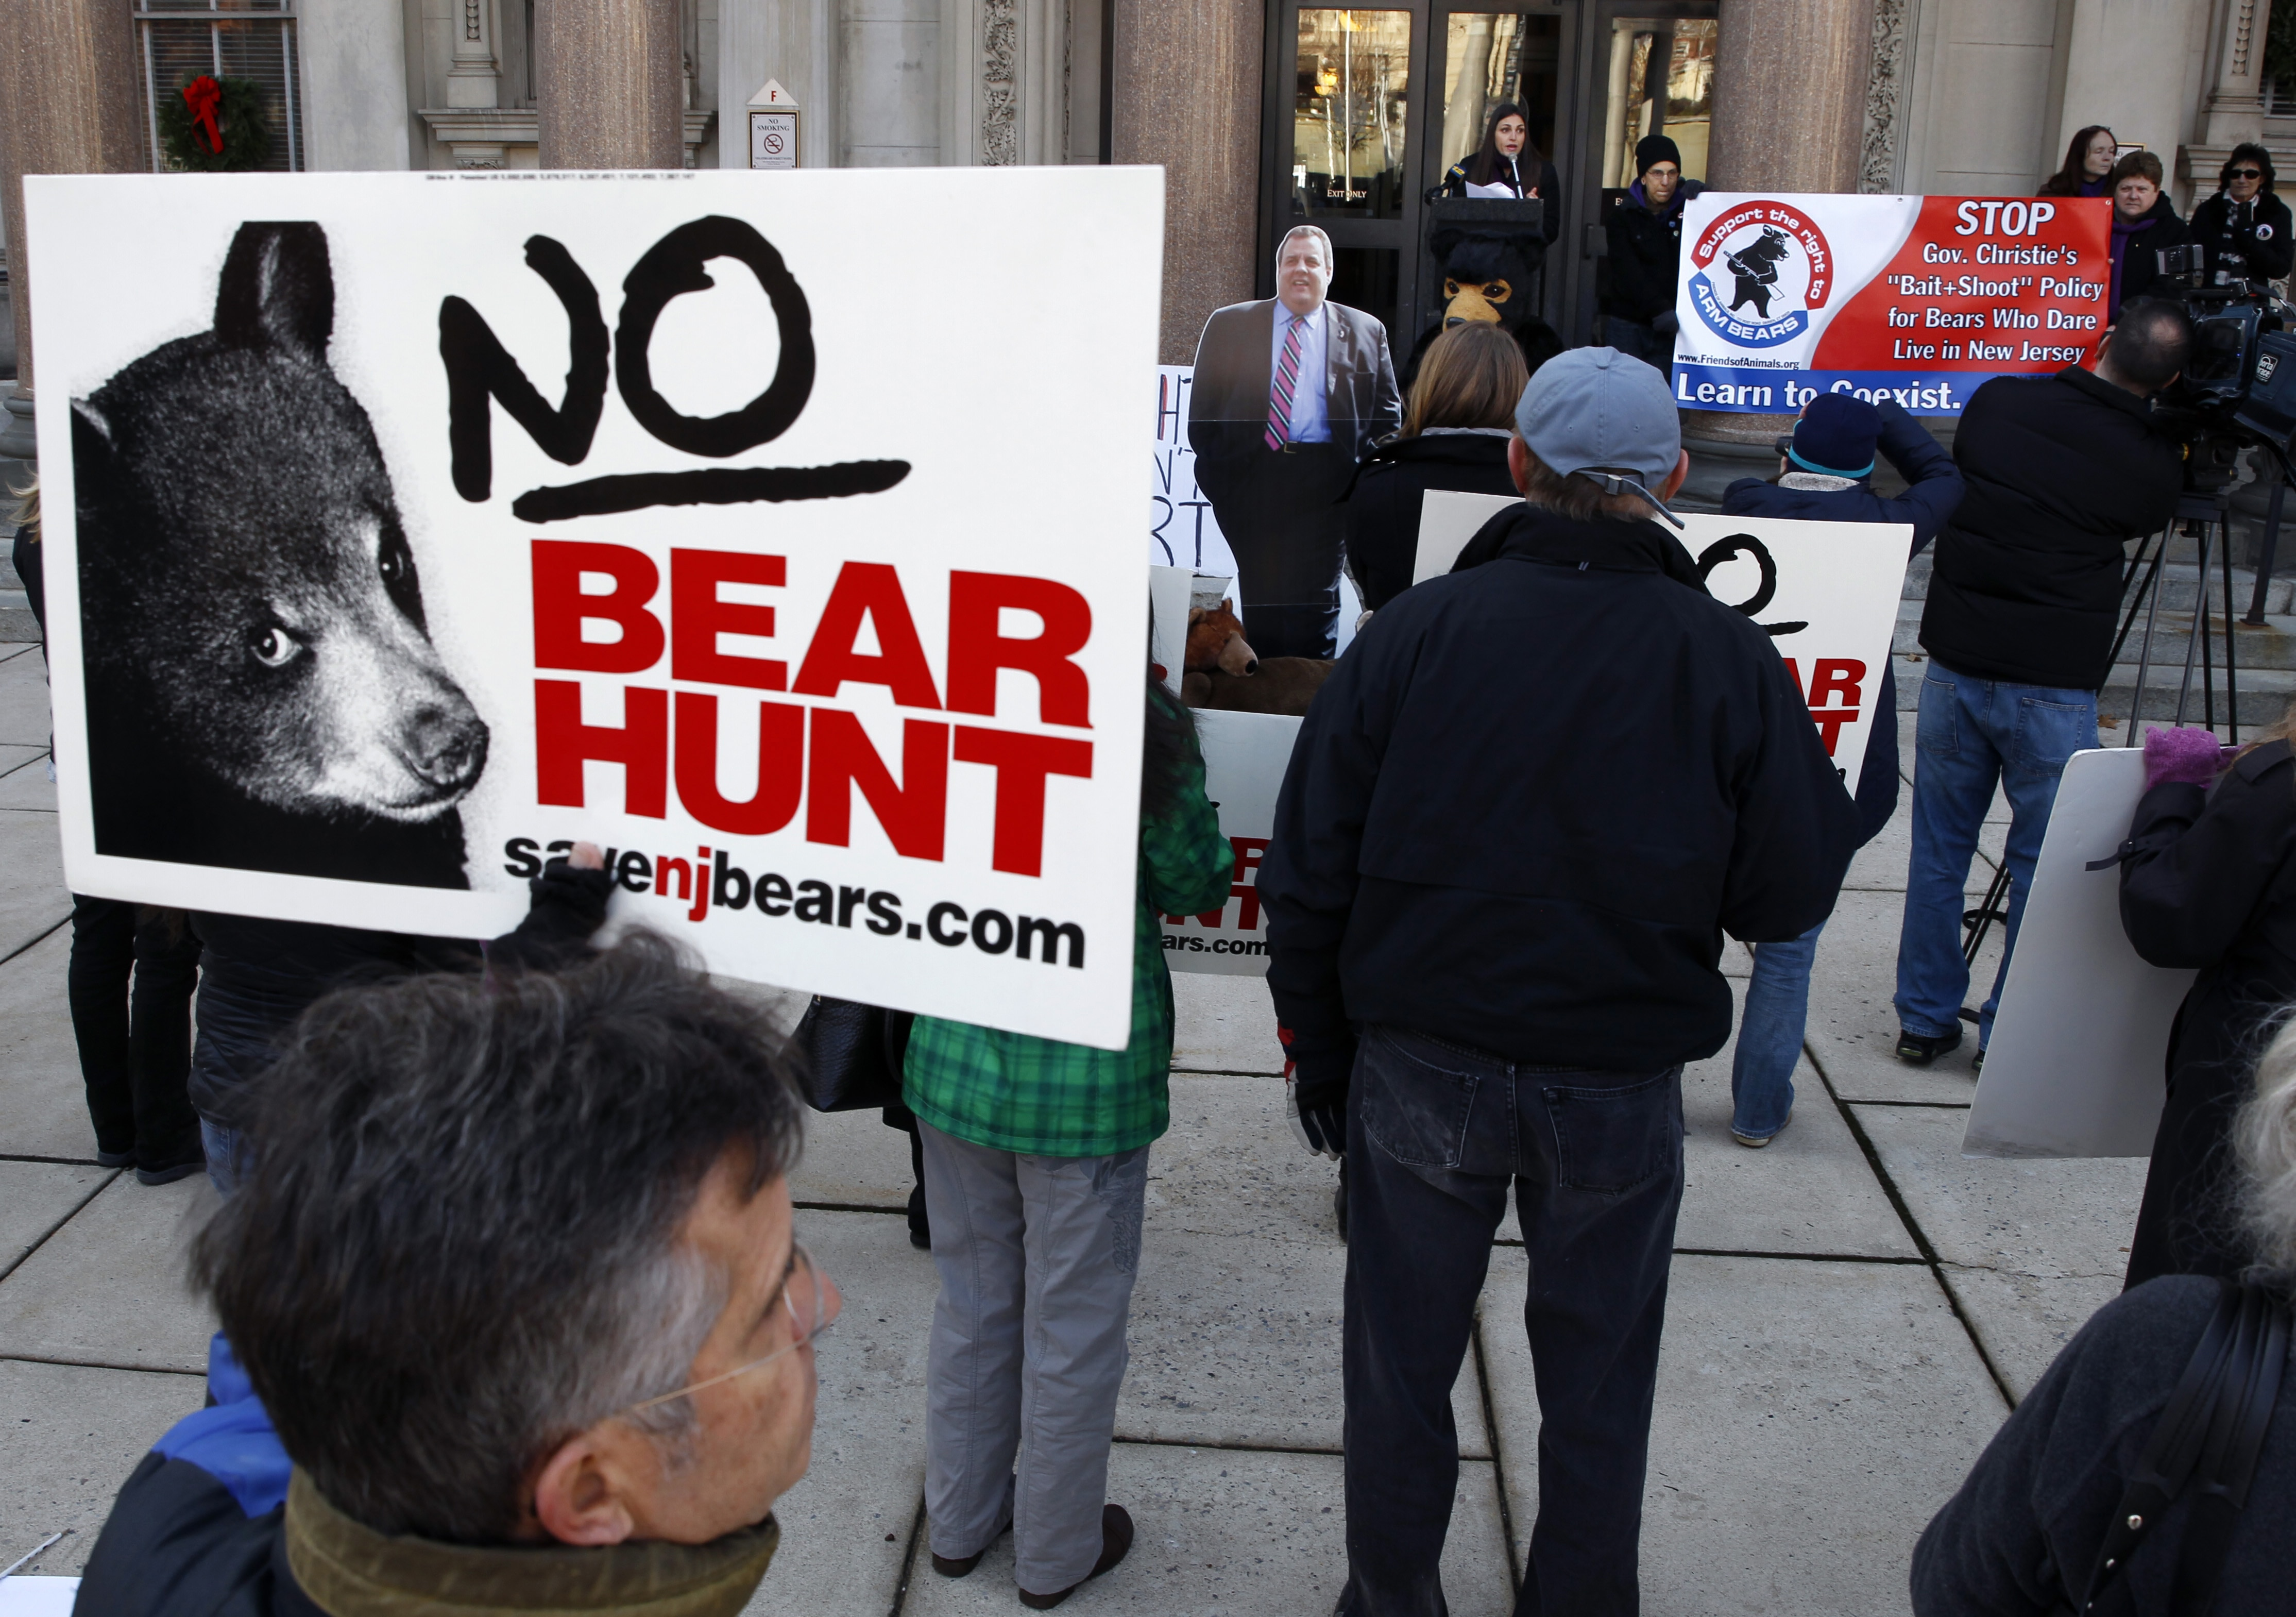 People gather to protest a bear hunt.